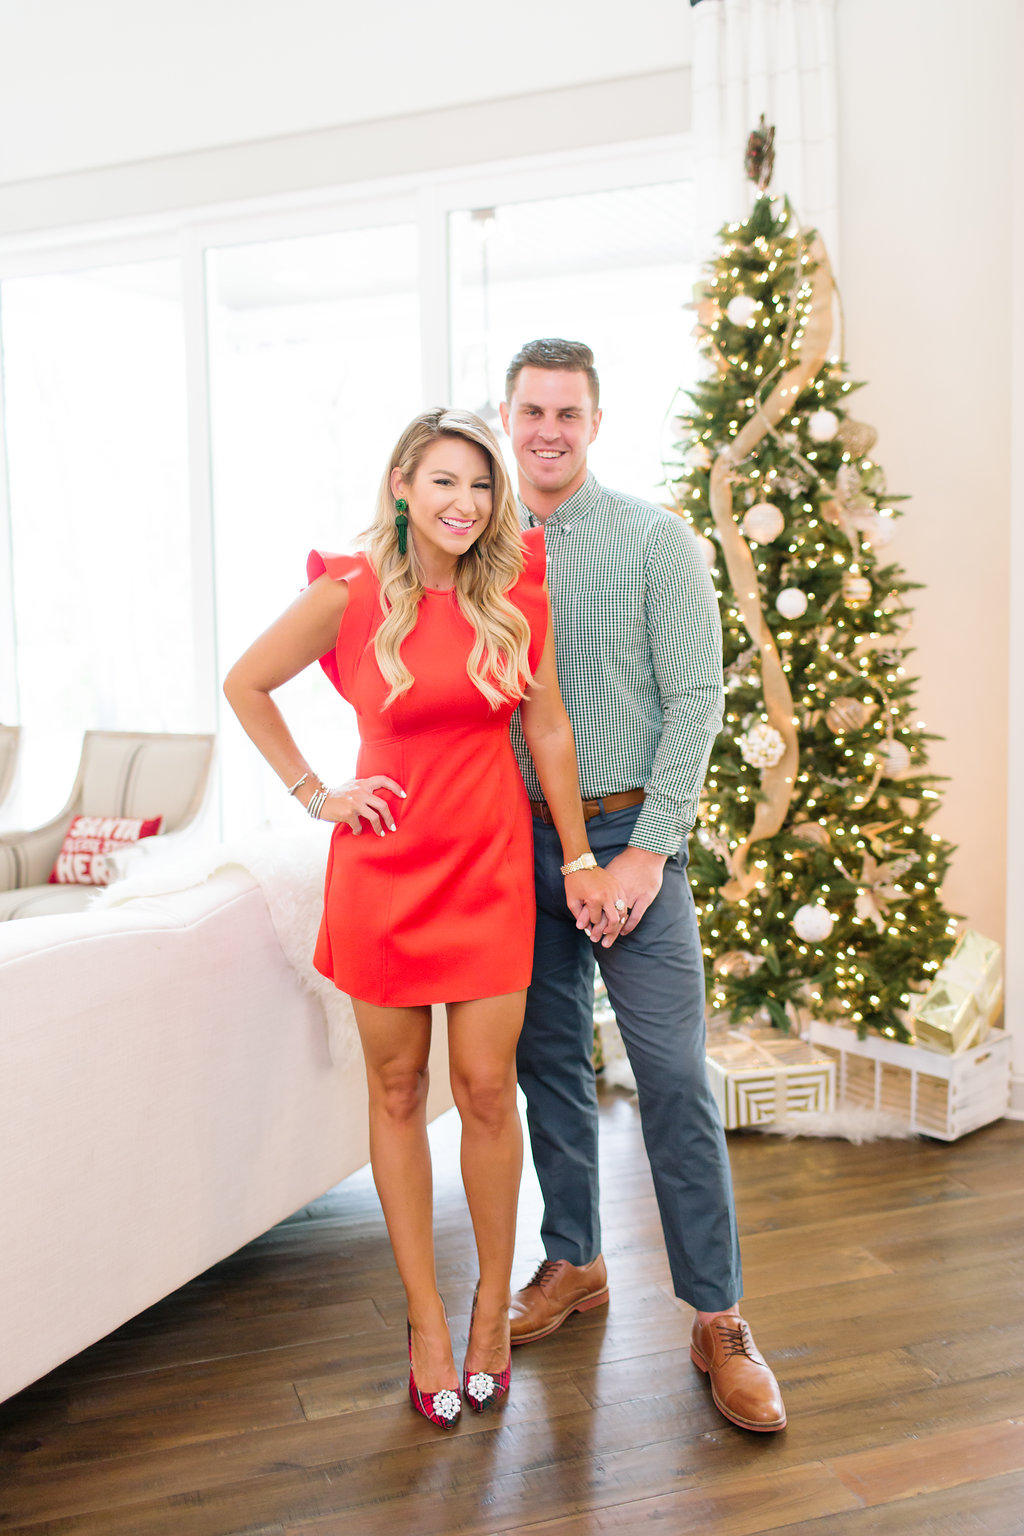 Christmas In Florida Outfits.Outfit Christmas Photo Outfit Ideas Shop Dandy A